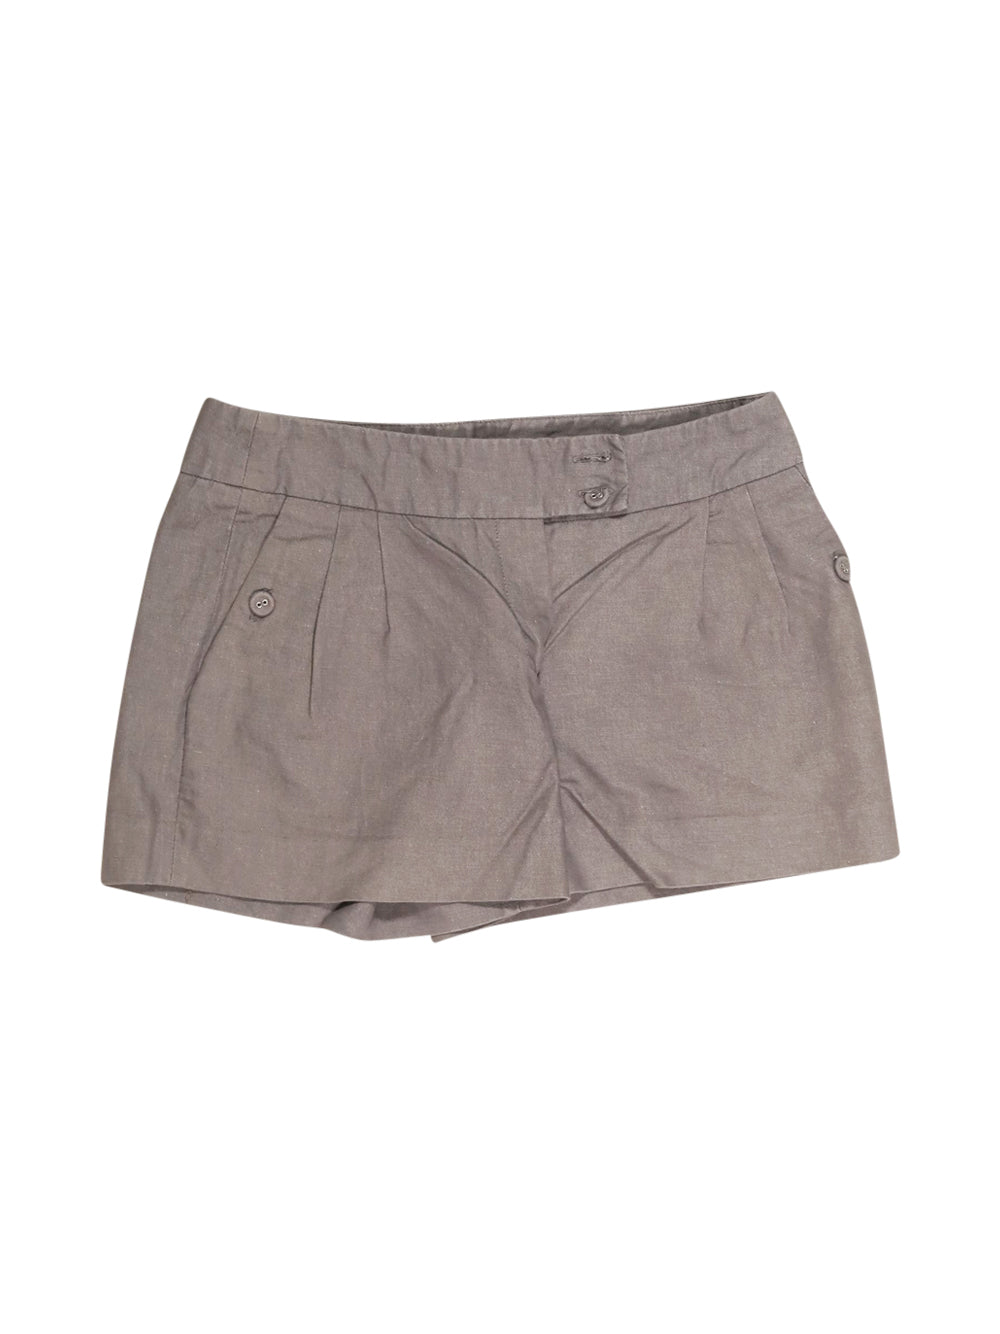 Front photo of Preloved Naf Naf Grey Woman's shorts - size 8/S